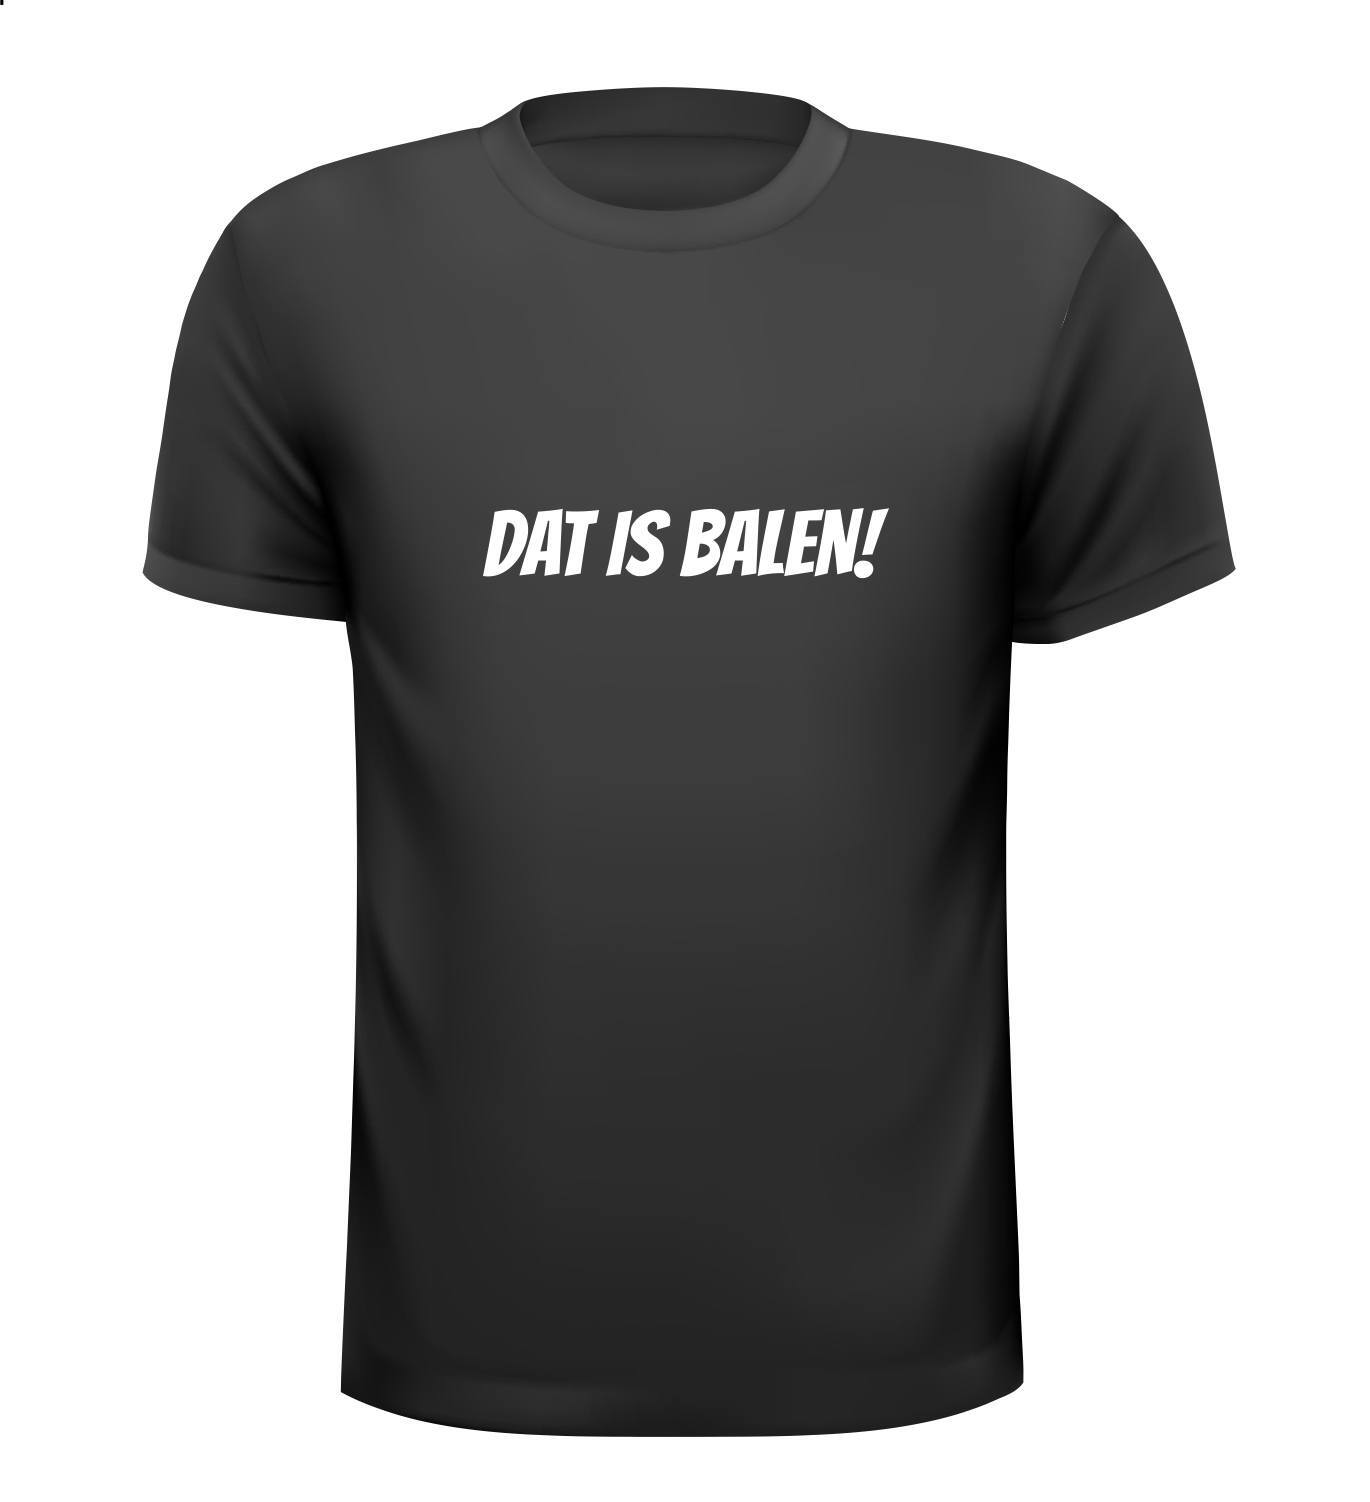 Dat is balen T-shirt